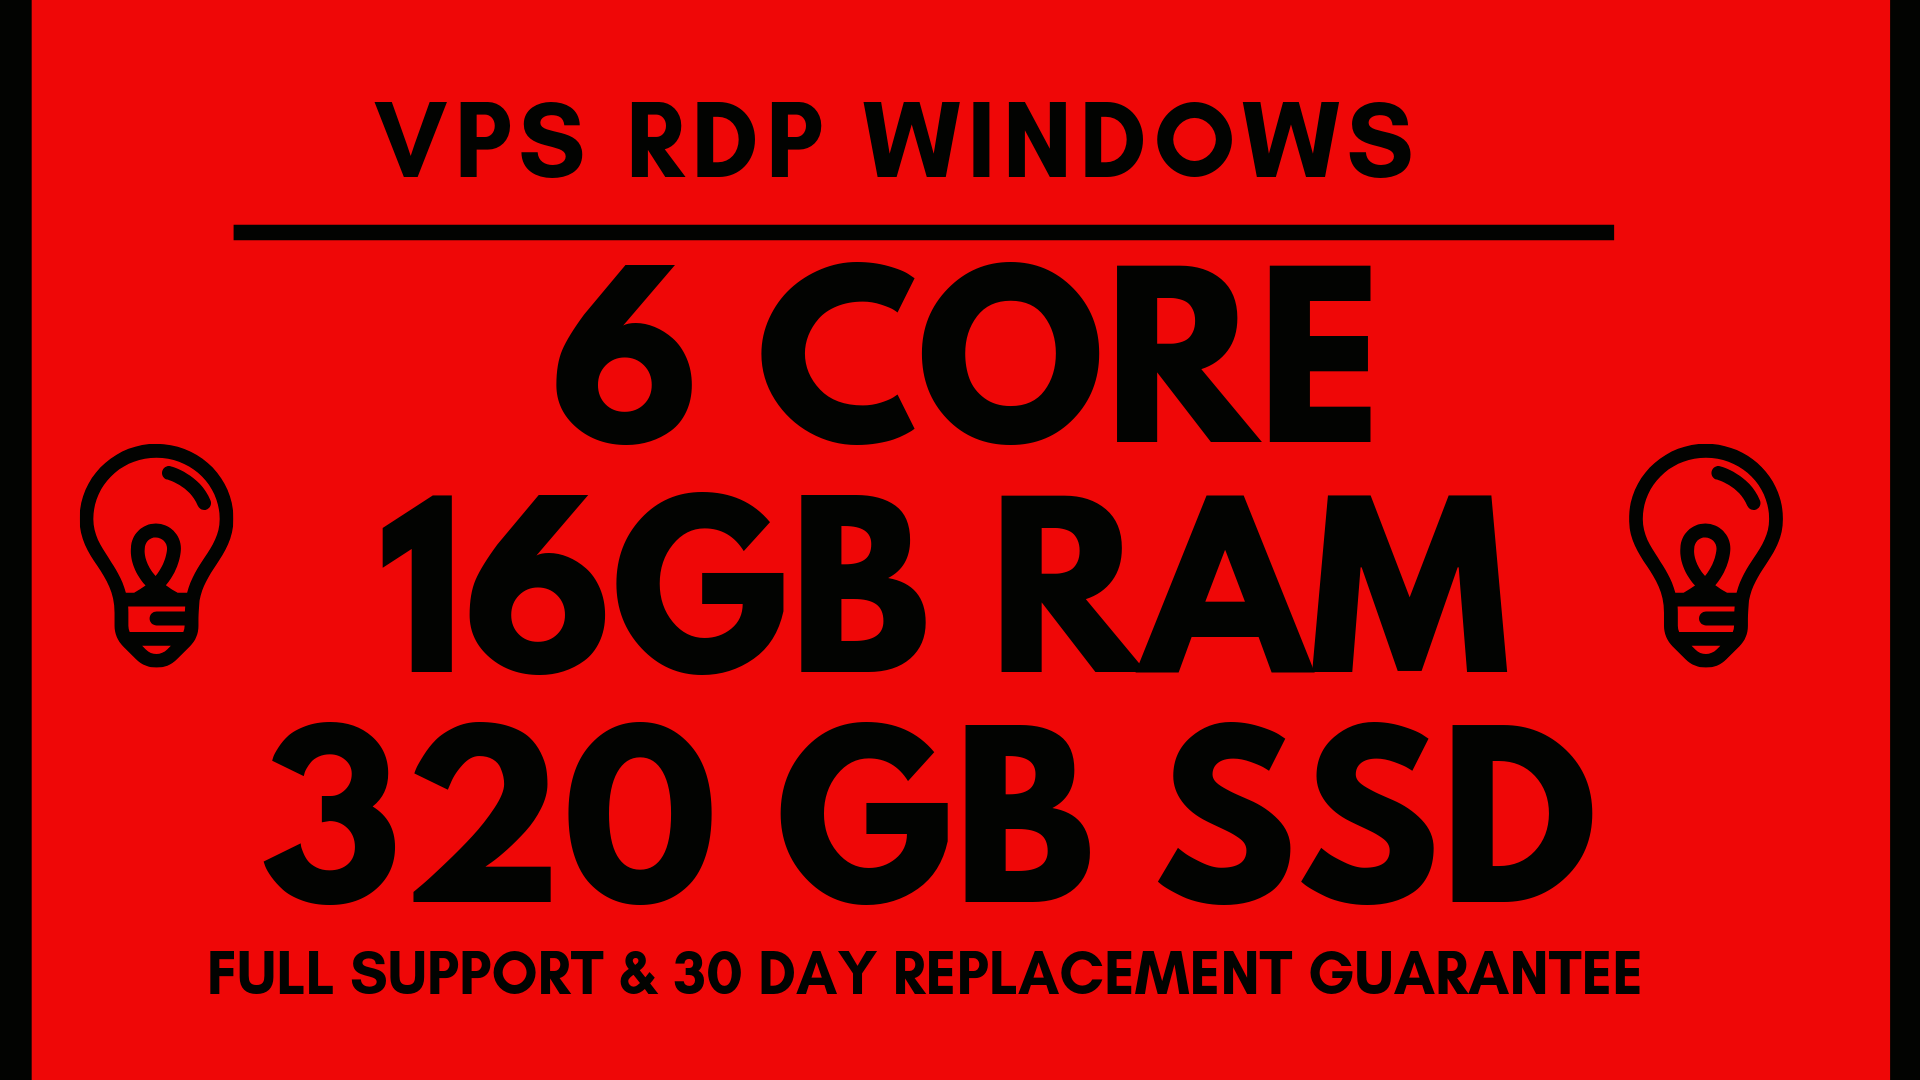 VPS RDP WINDOWS 6 Core 16GB RAM 320GB SSD